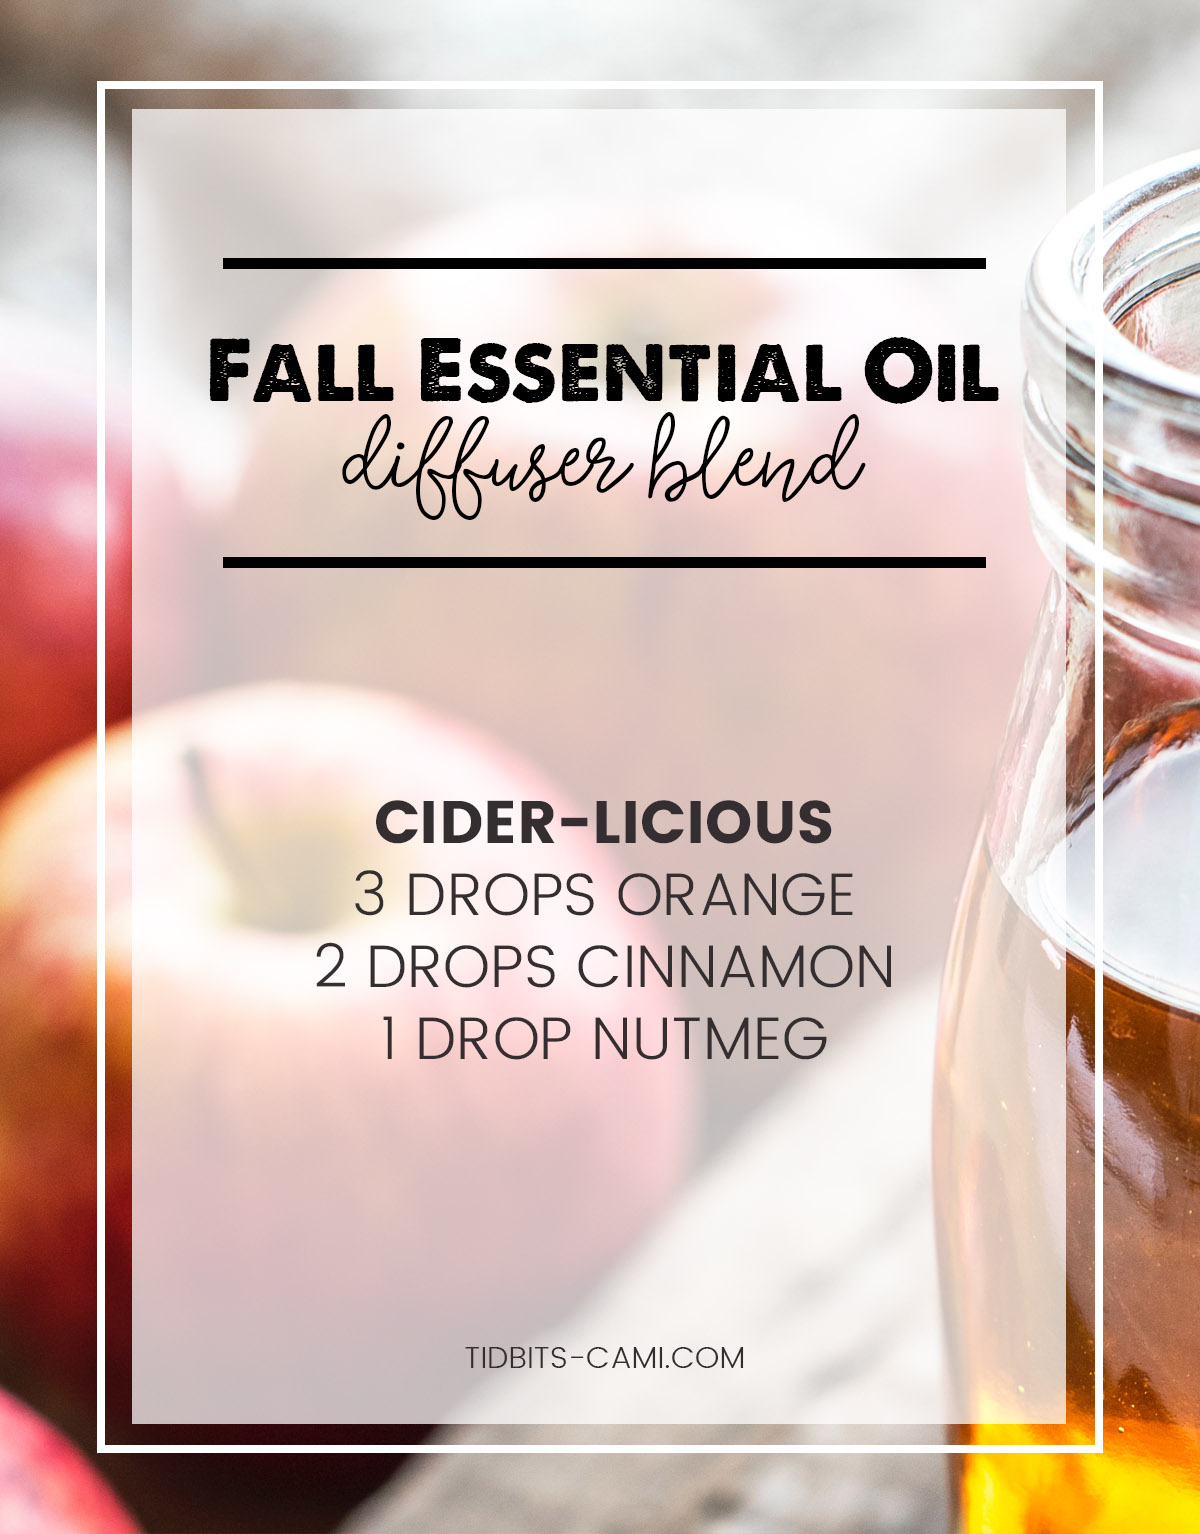 cider-licious essential oil diffuser blend